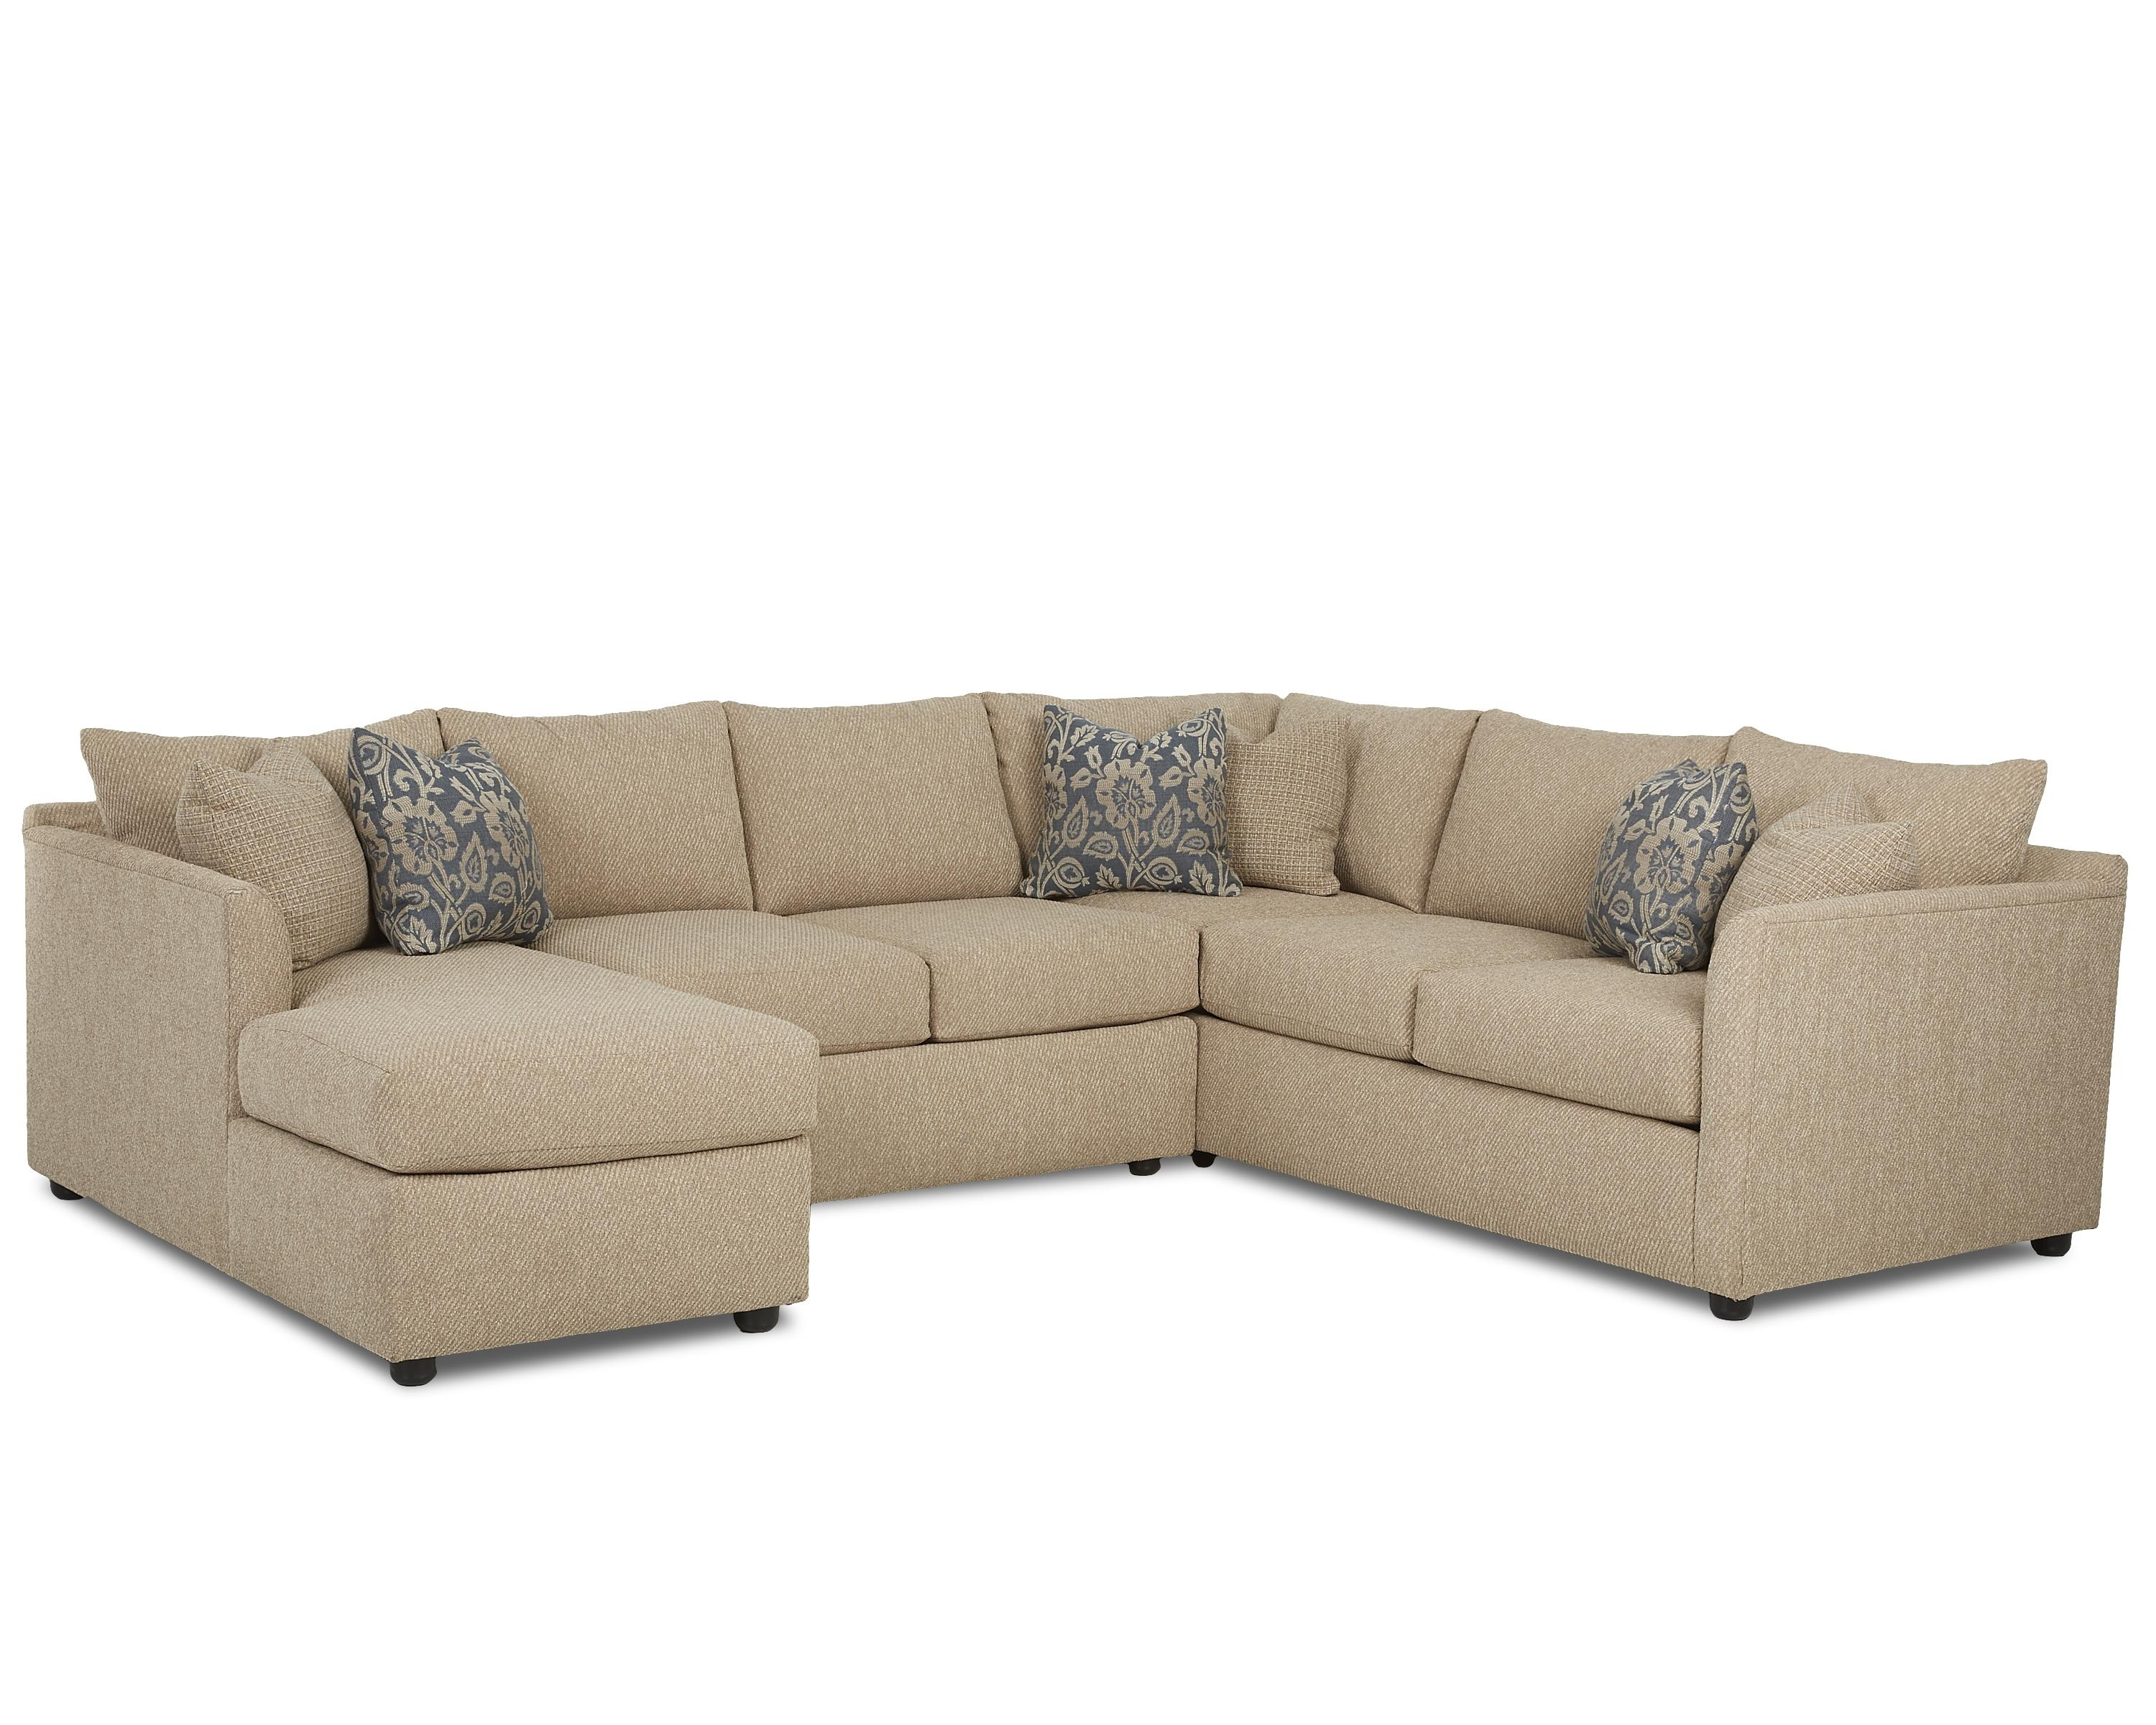 Transitional Sectional Sofa With Chaisetrisha Yearwood Home Pertaining To Most Popular Sectional Sofas In Atlanta (View 17 of 20)